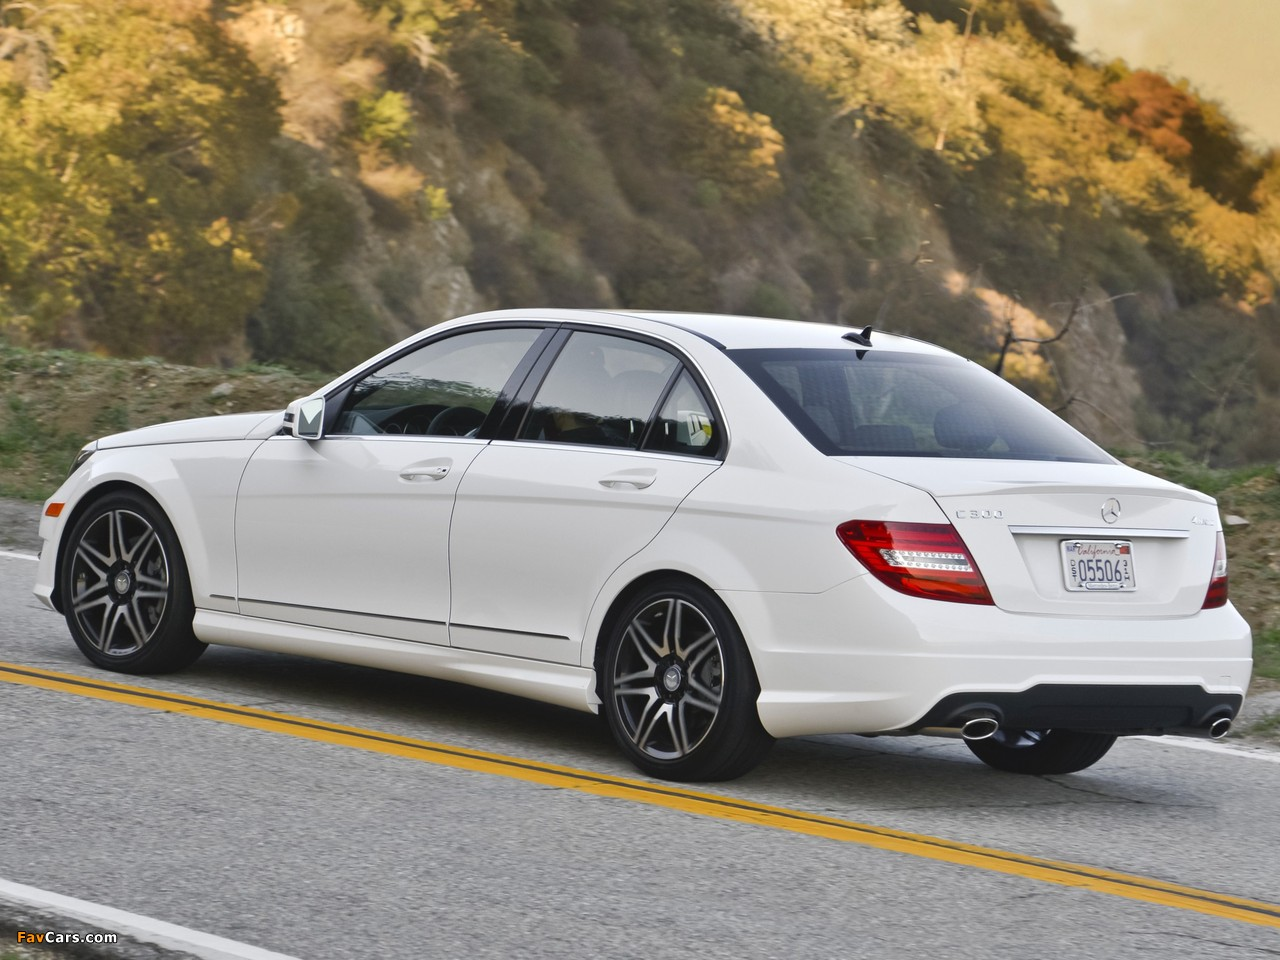 Mercedes-Benz C 300 4MATIC AMG Sports Package US-spec (W204) 2011 images (1280 x 960)